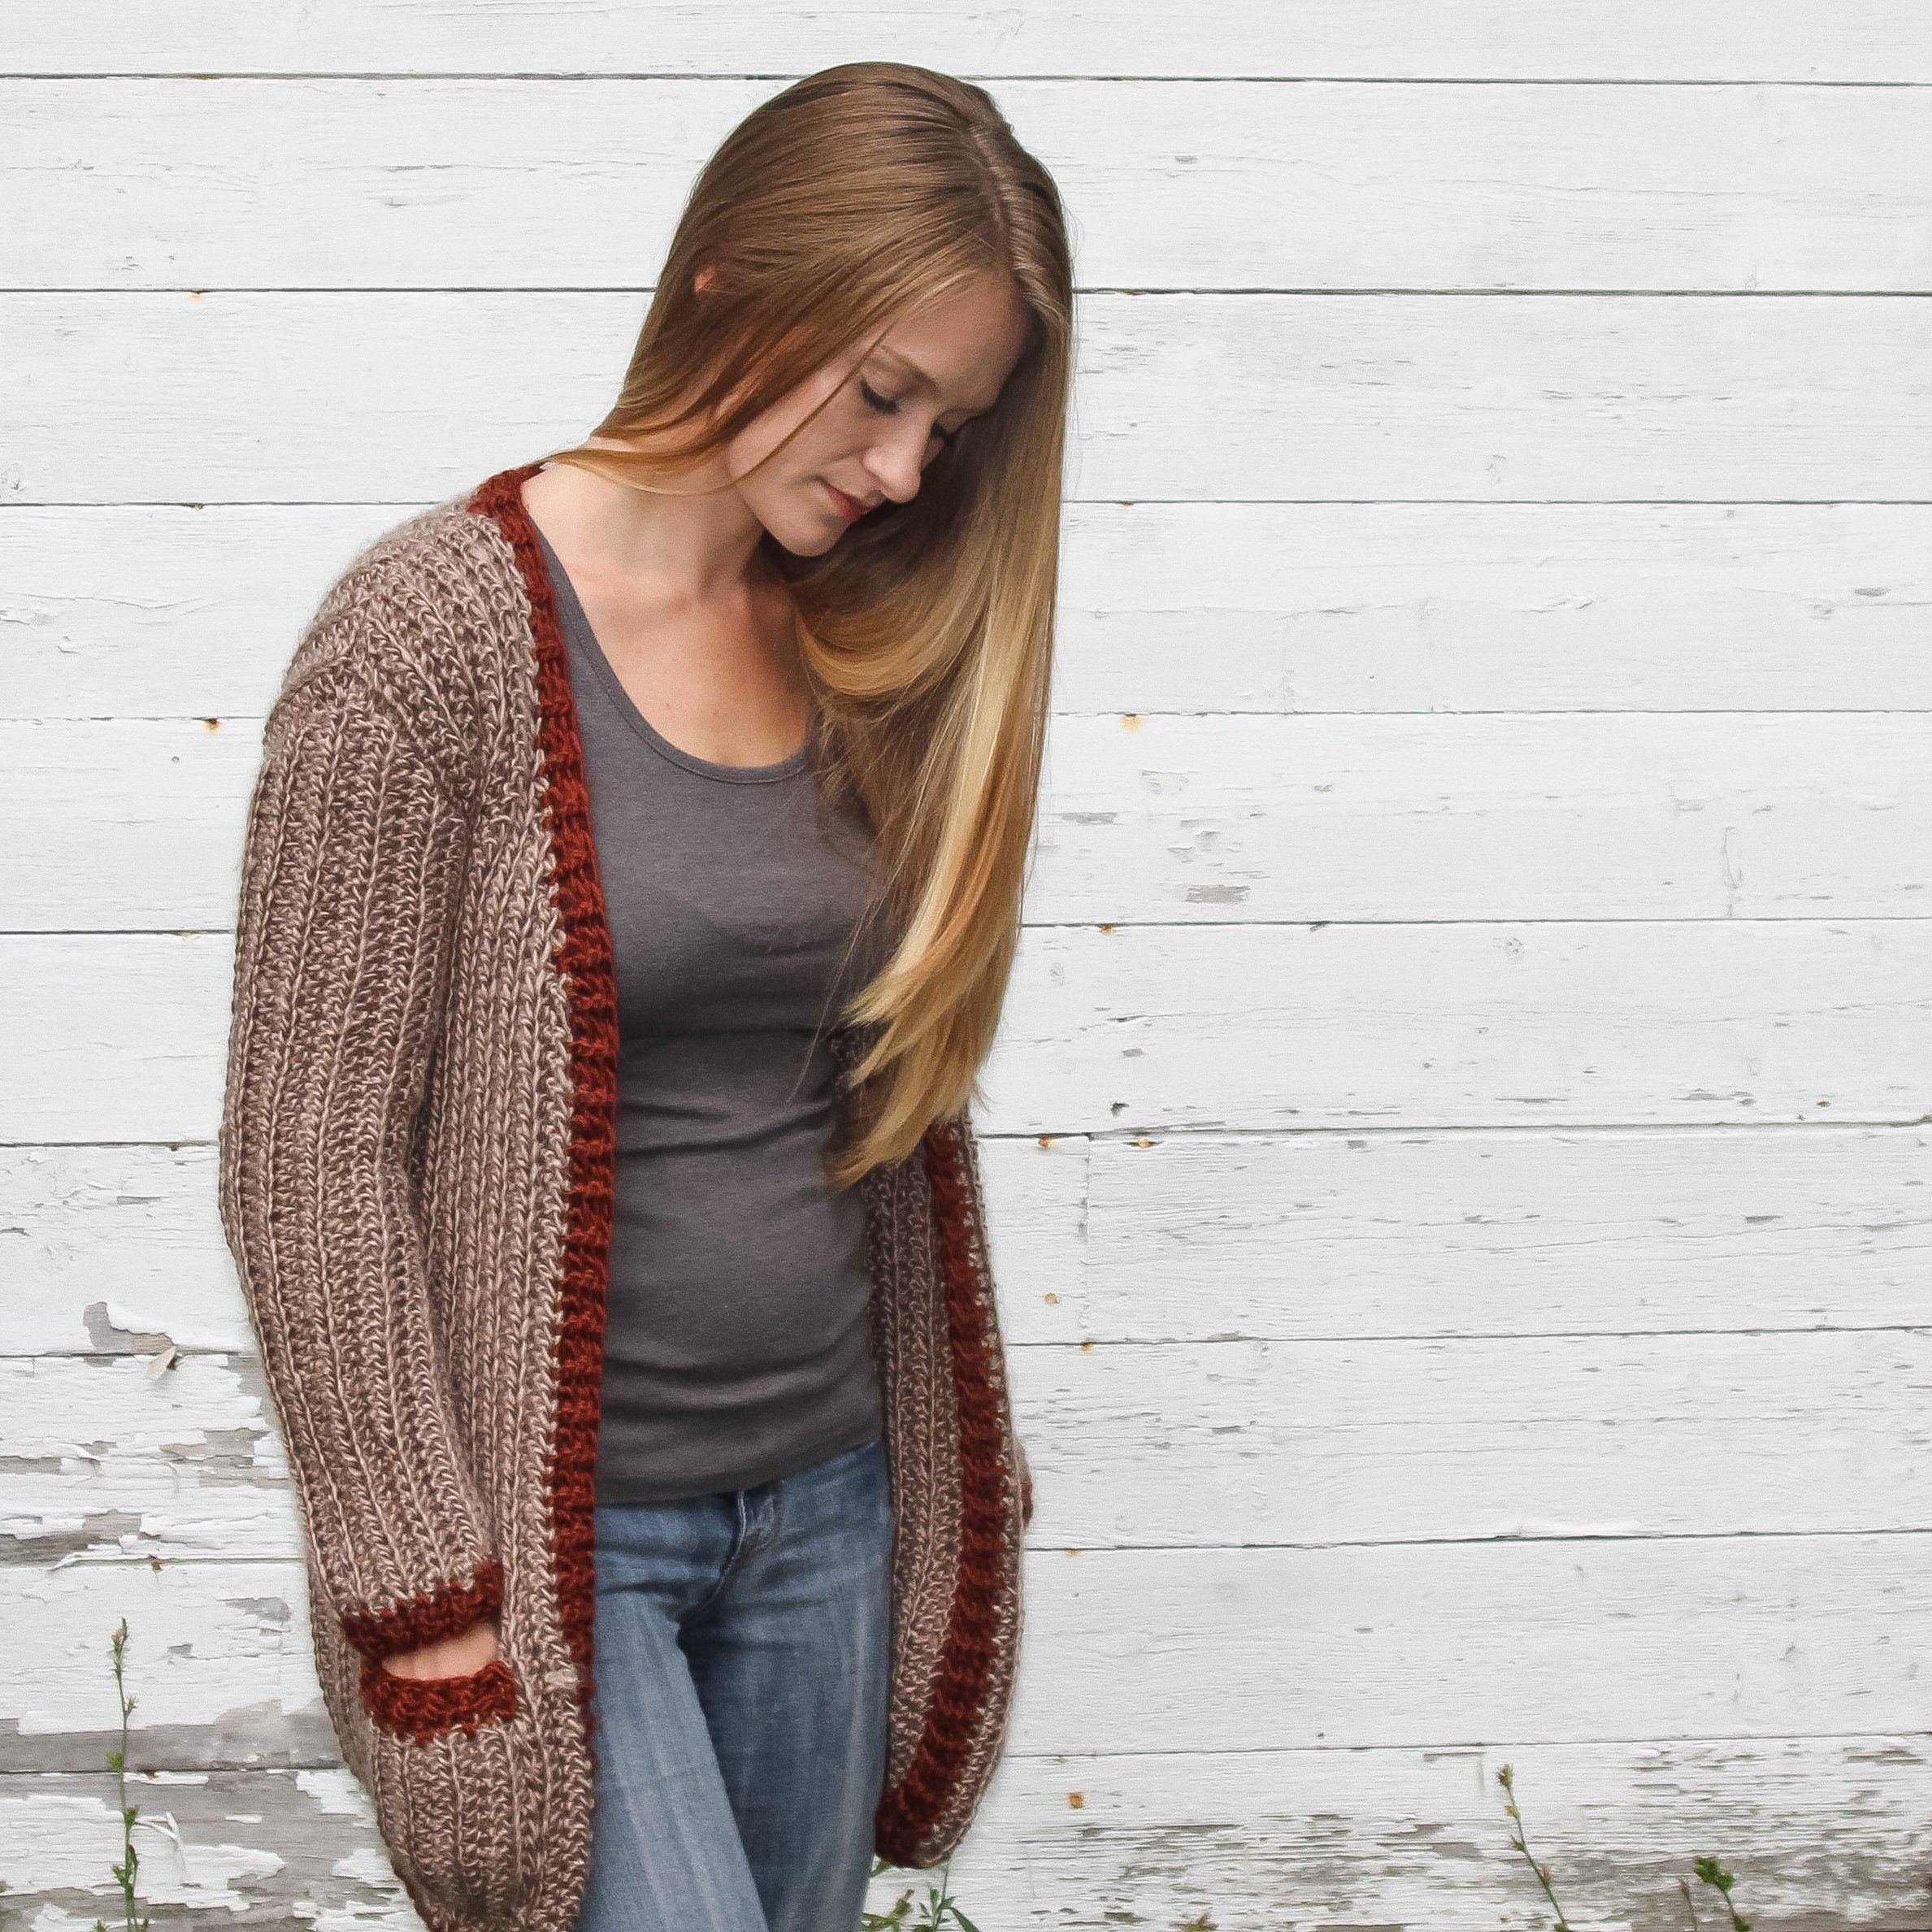 Sophia Cardigan Free Crochet Pattern - Life and Yarn | Way Out Yarn ...